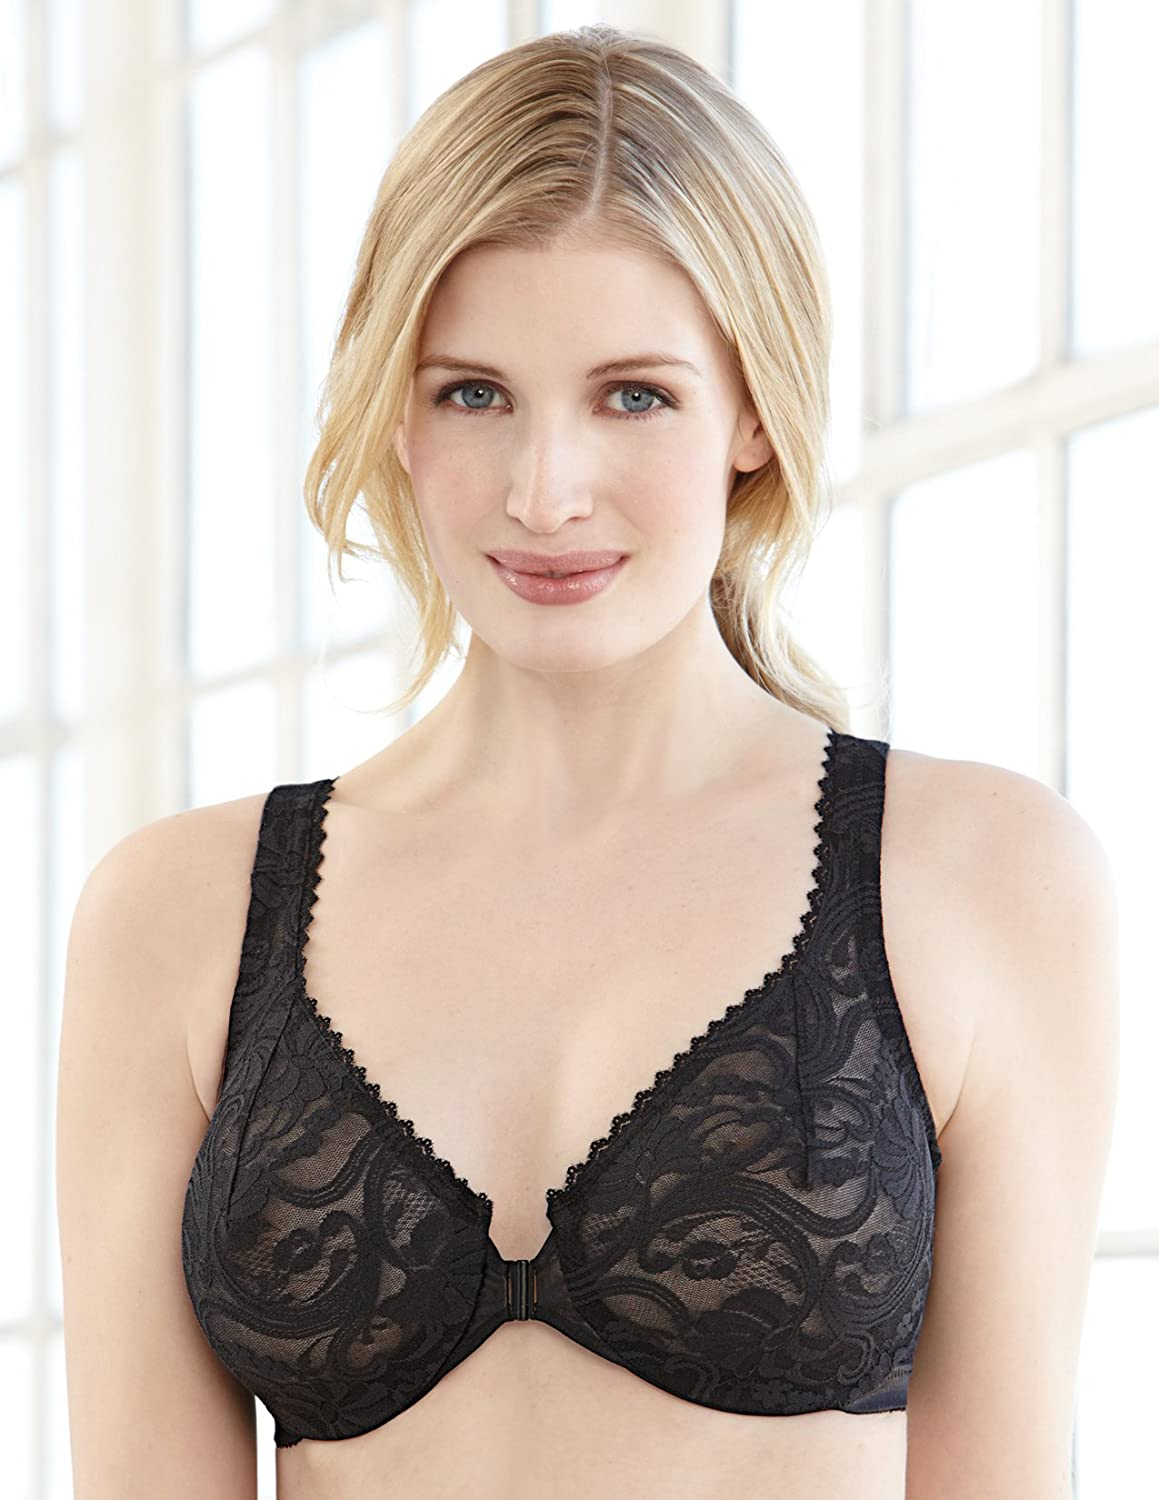 Glamorise Womens Full Figure Wonderwire Front Close Stretch Lace Bra 9245 At Amazon Womens Clothing Store Bras